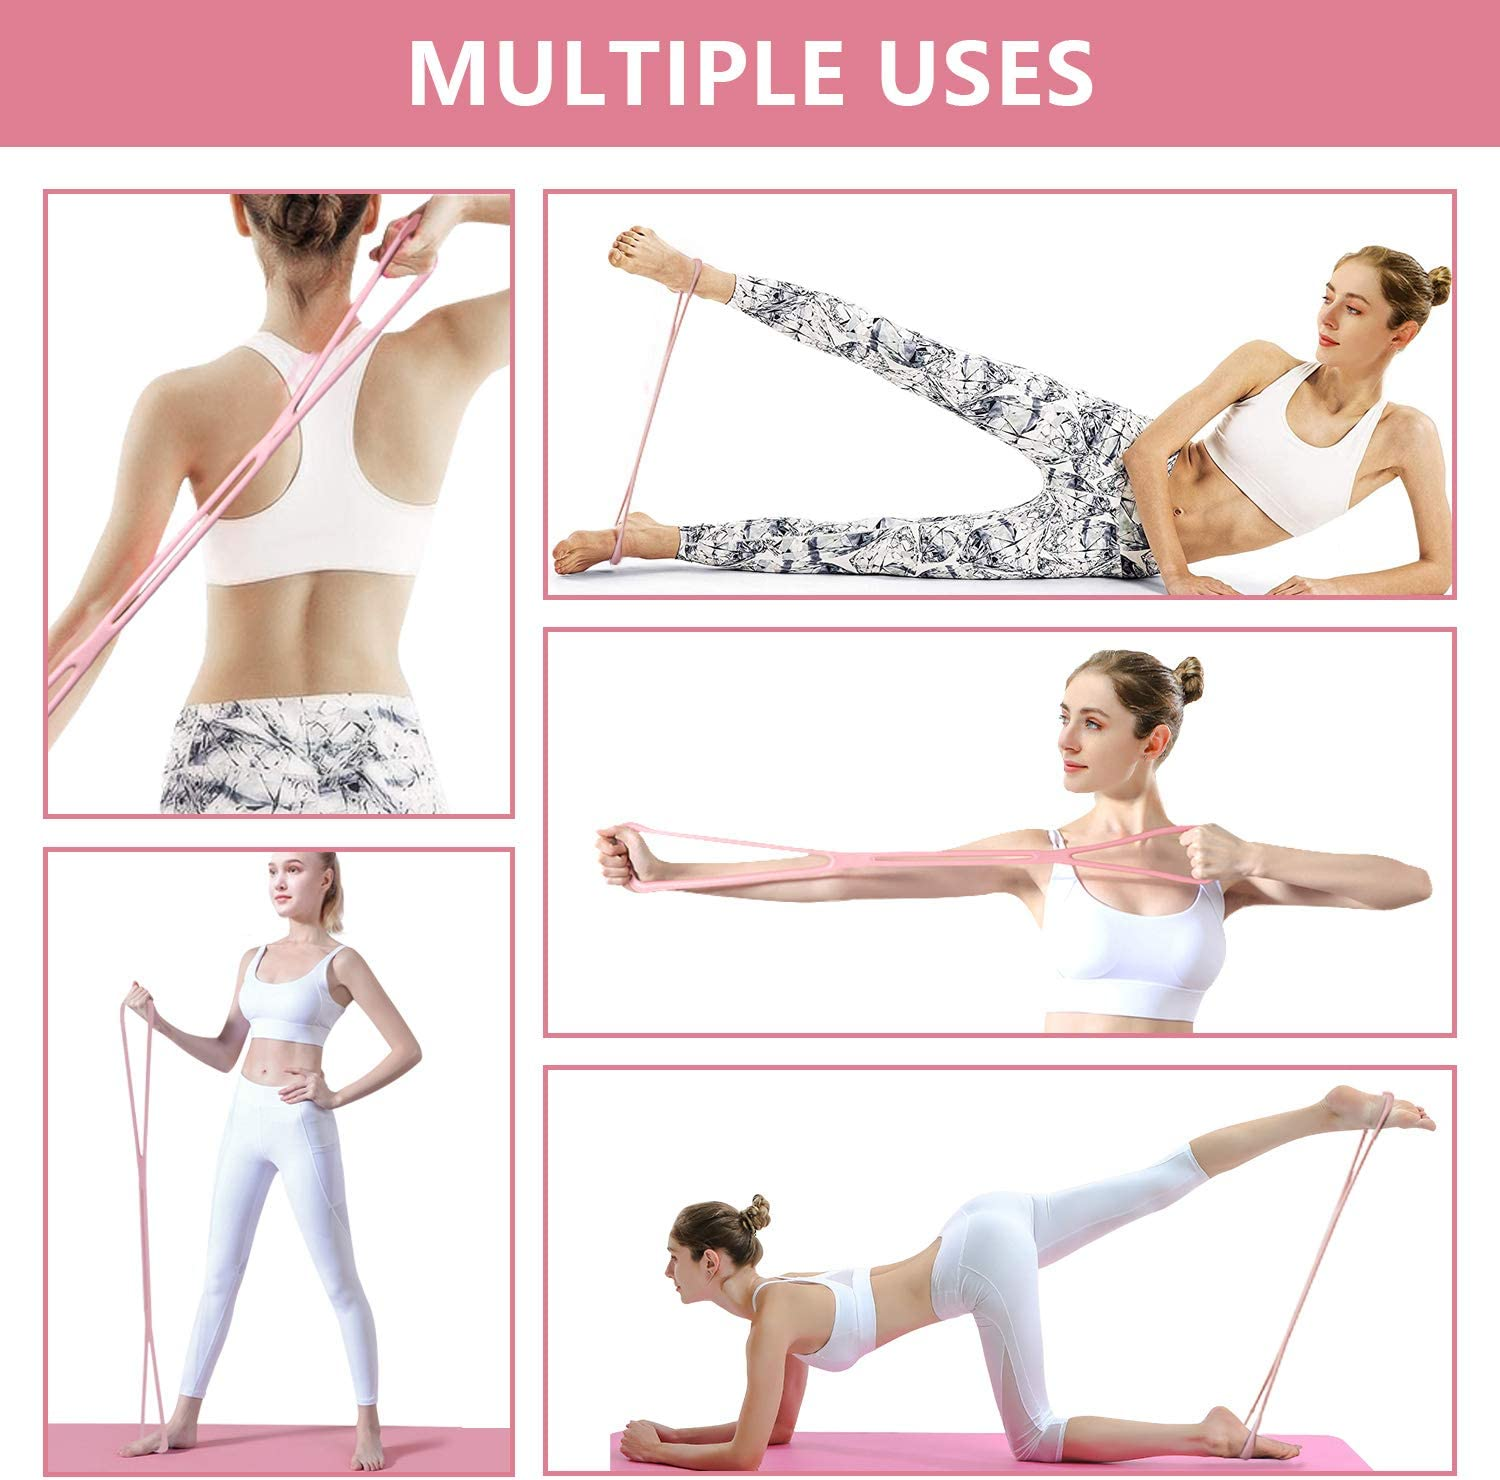 Portable Yoga Pilates Stick 8 Shape Chest Rally Pull Rope Muscle Toning Bar Home Gym Pilates Body Shaping Pilates Stick KMM Pilates Bar Kit with Resistance Band